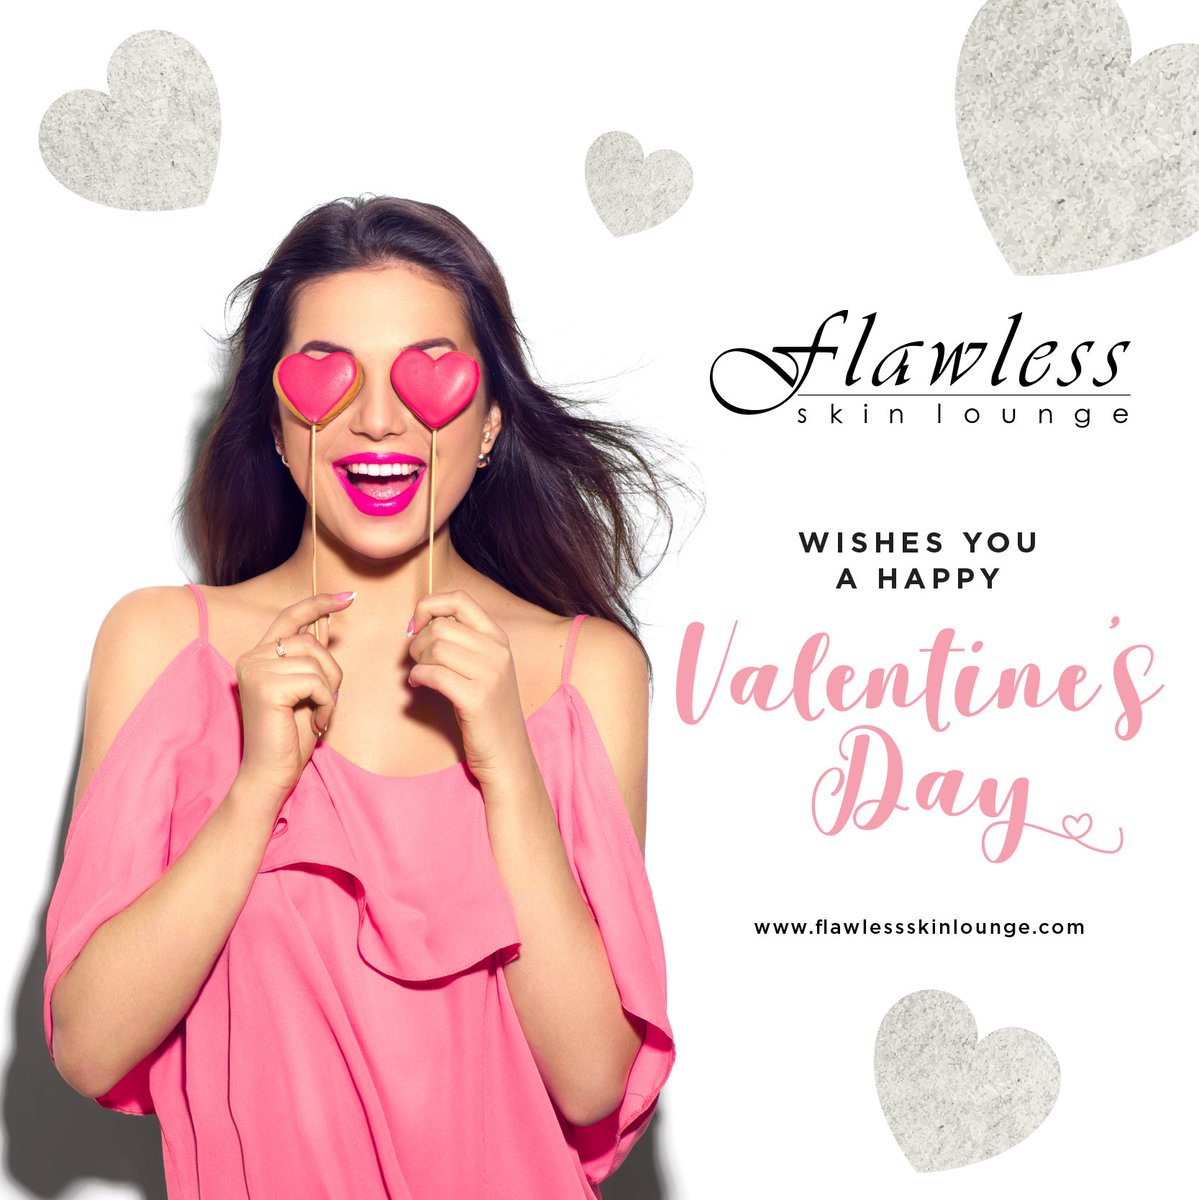 Wishing you all a Happy Valentine's Day! #flawlessskinlounge #friendswoodtx #pearlandtx #skincare #houston #skin #skingoals #valentinesday #valentinesday2020pic.twitter.com/FVdVvBHMdq